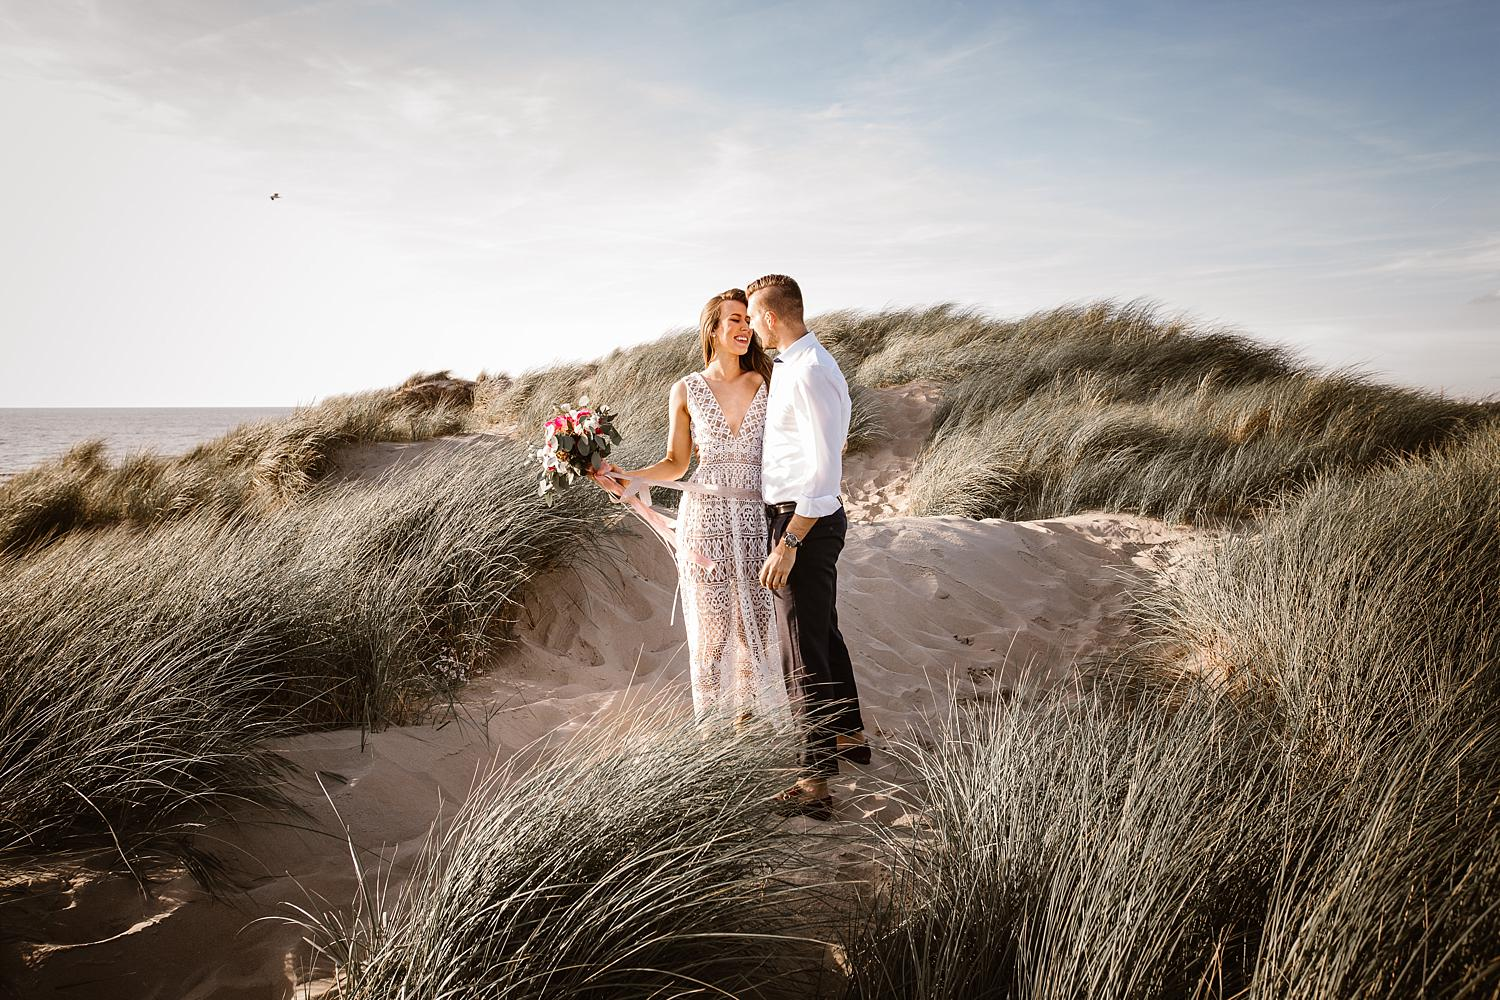 CP 042 - Chloe & Philipp - A Classy Engagement Session on the Beach